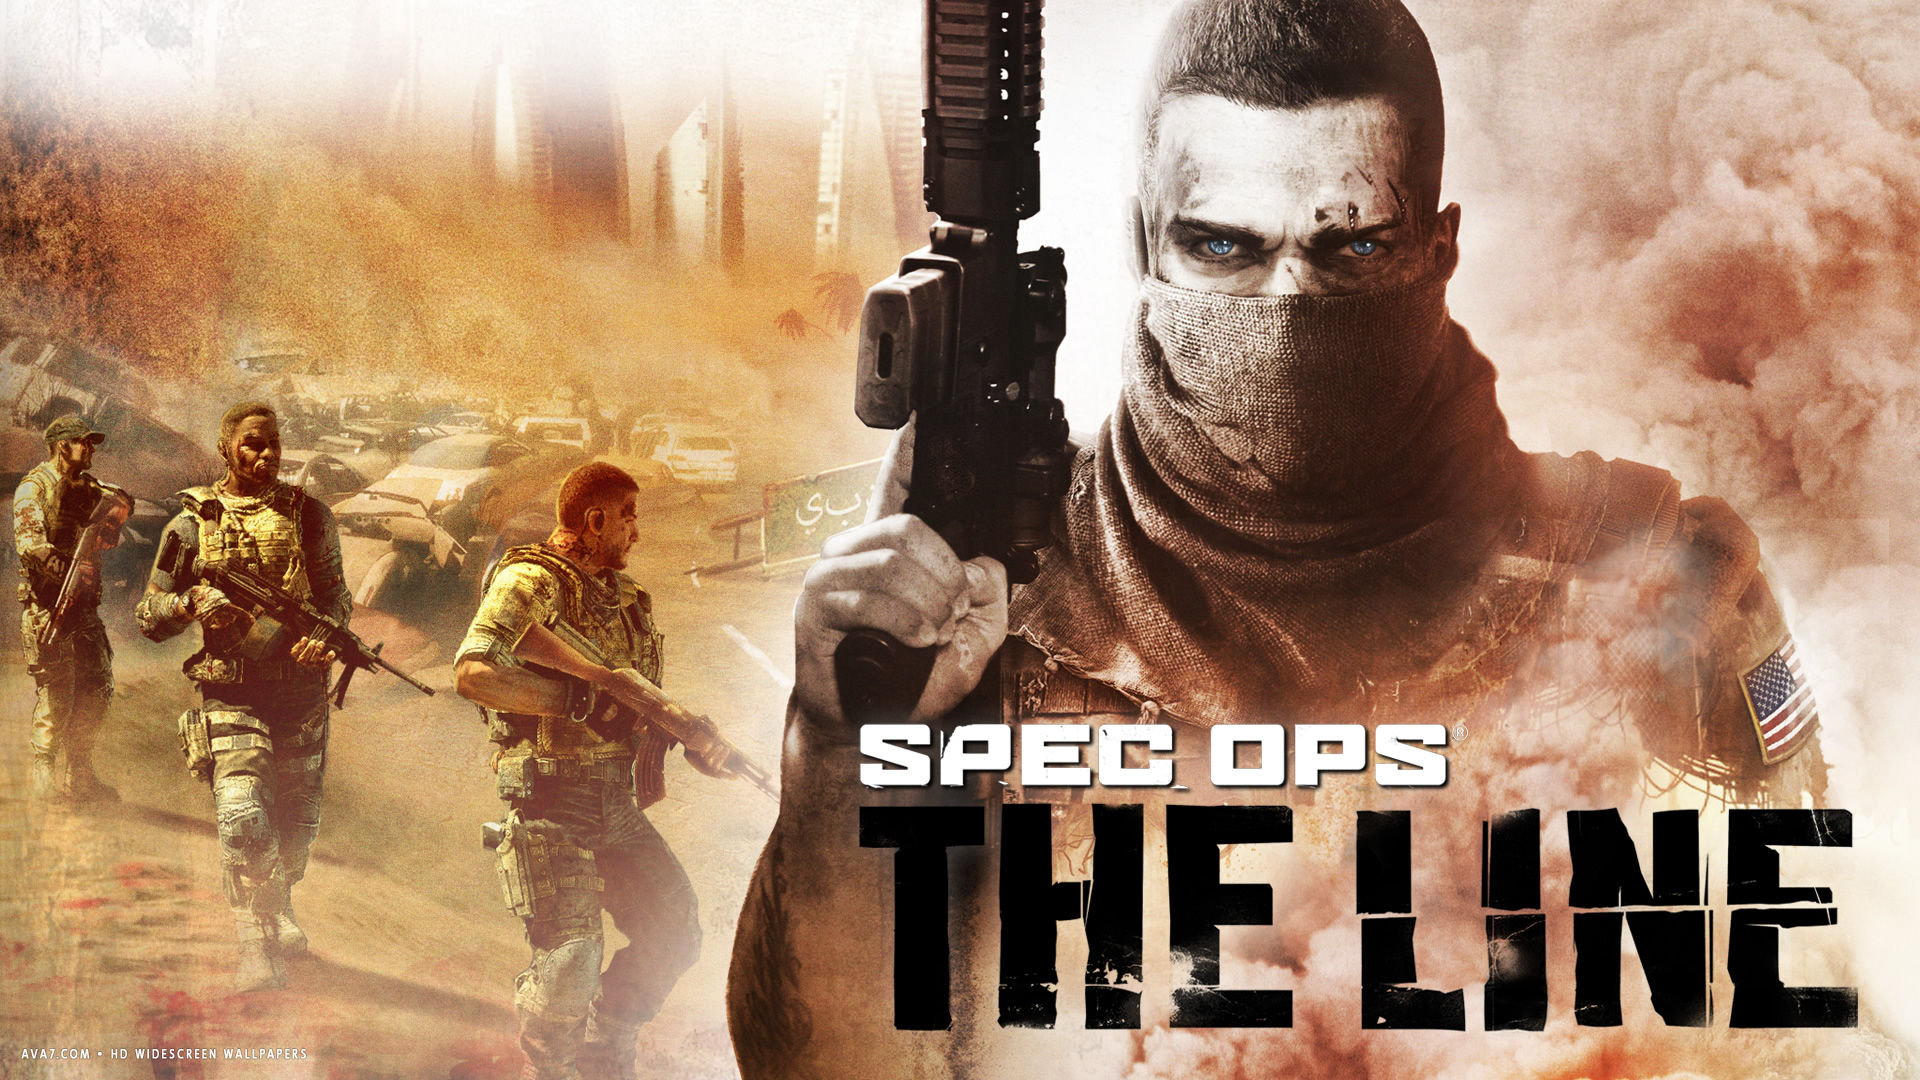 spec ops the line game hd widescreen wallpaper